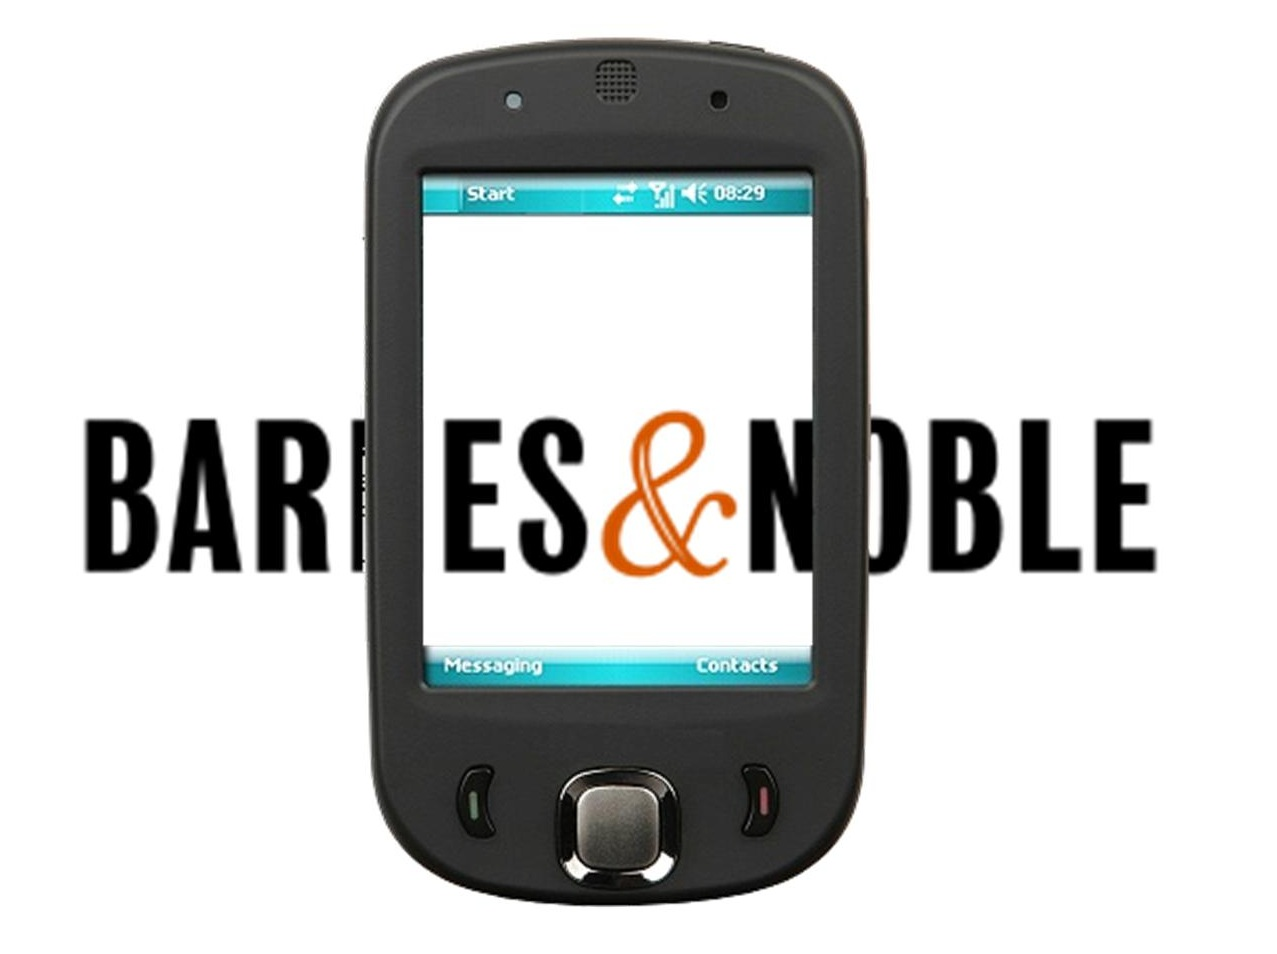 Barnes & Noble Mobile Commerce